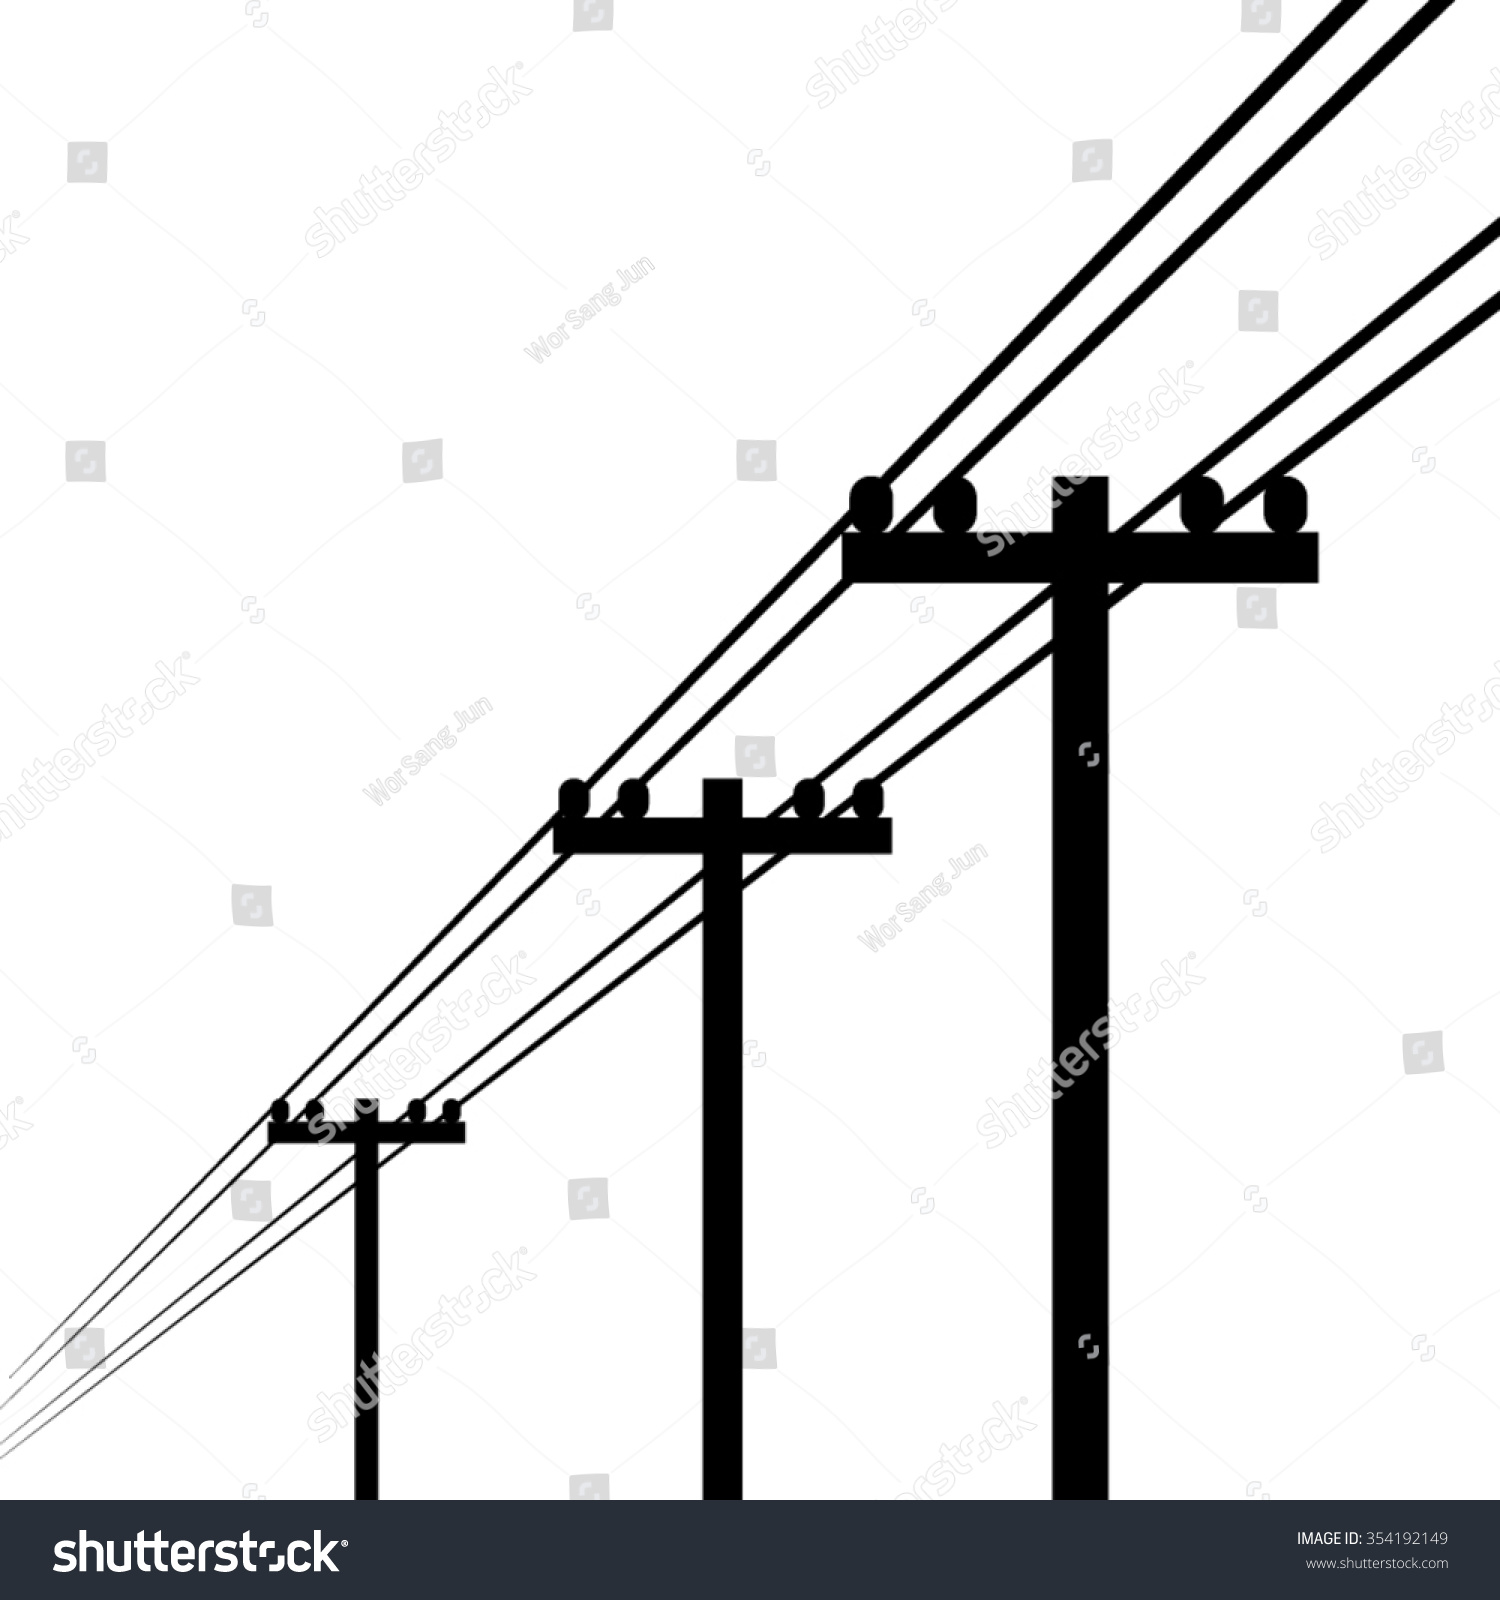 Electrical Power Poles : Electricity pole vector stock shutterstock